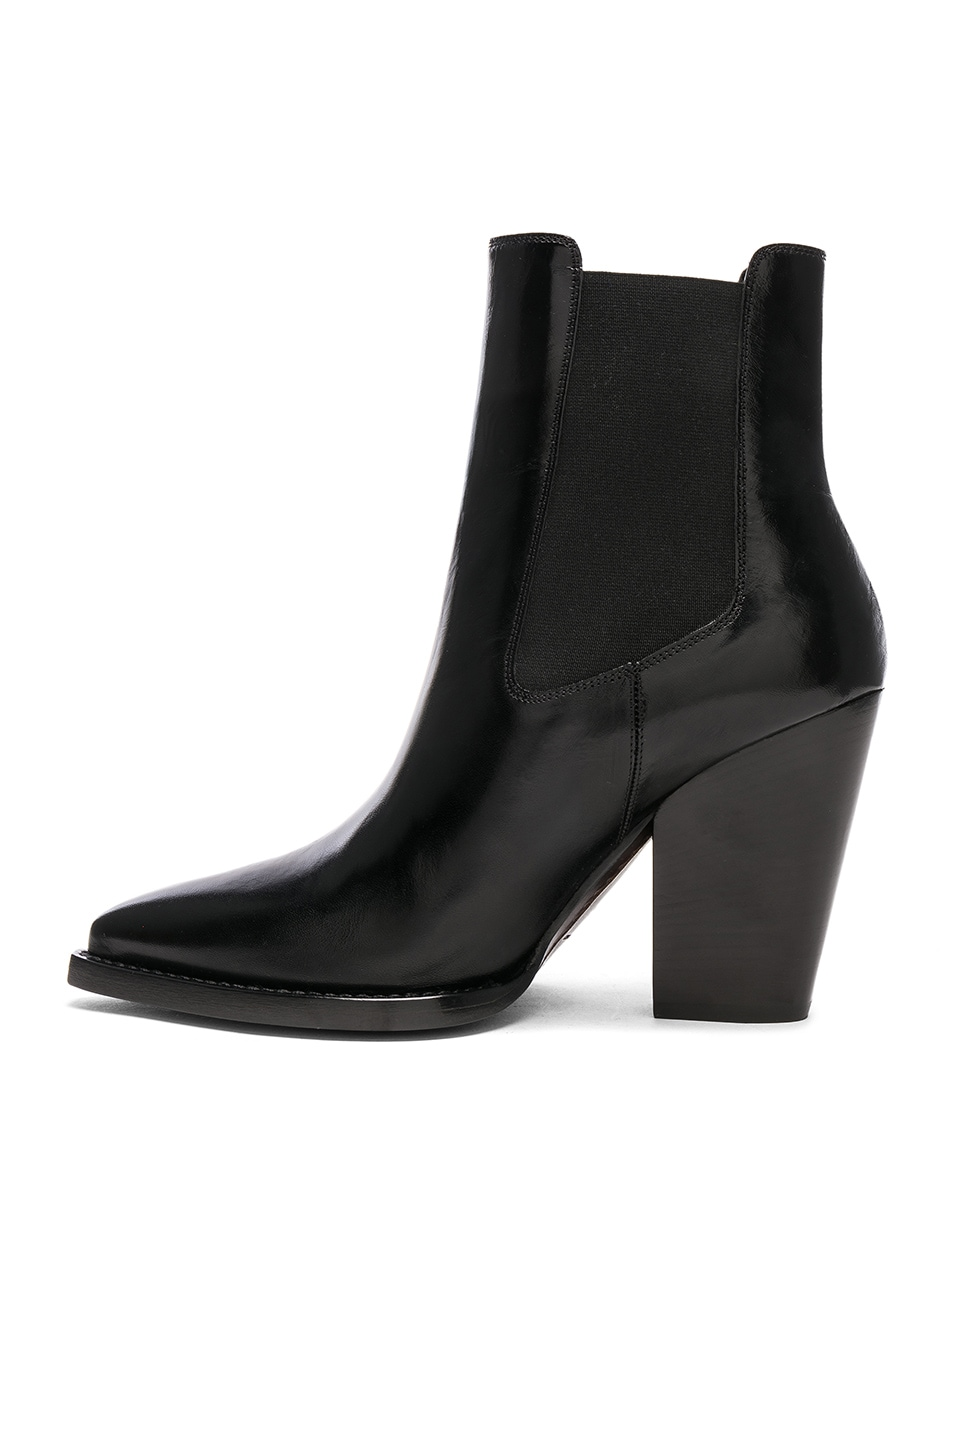 Image 5 of Saint Laurent Leather Theo Heeled Chelsea Boots in Black